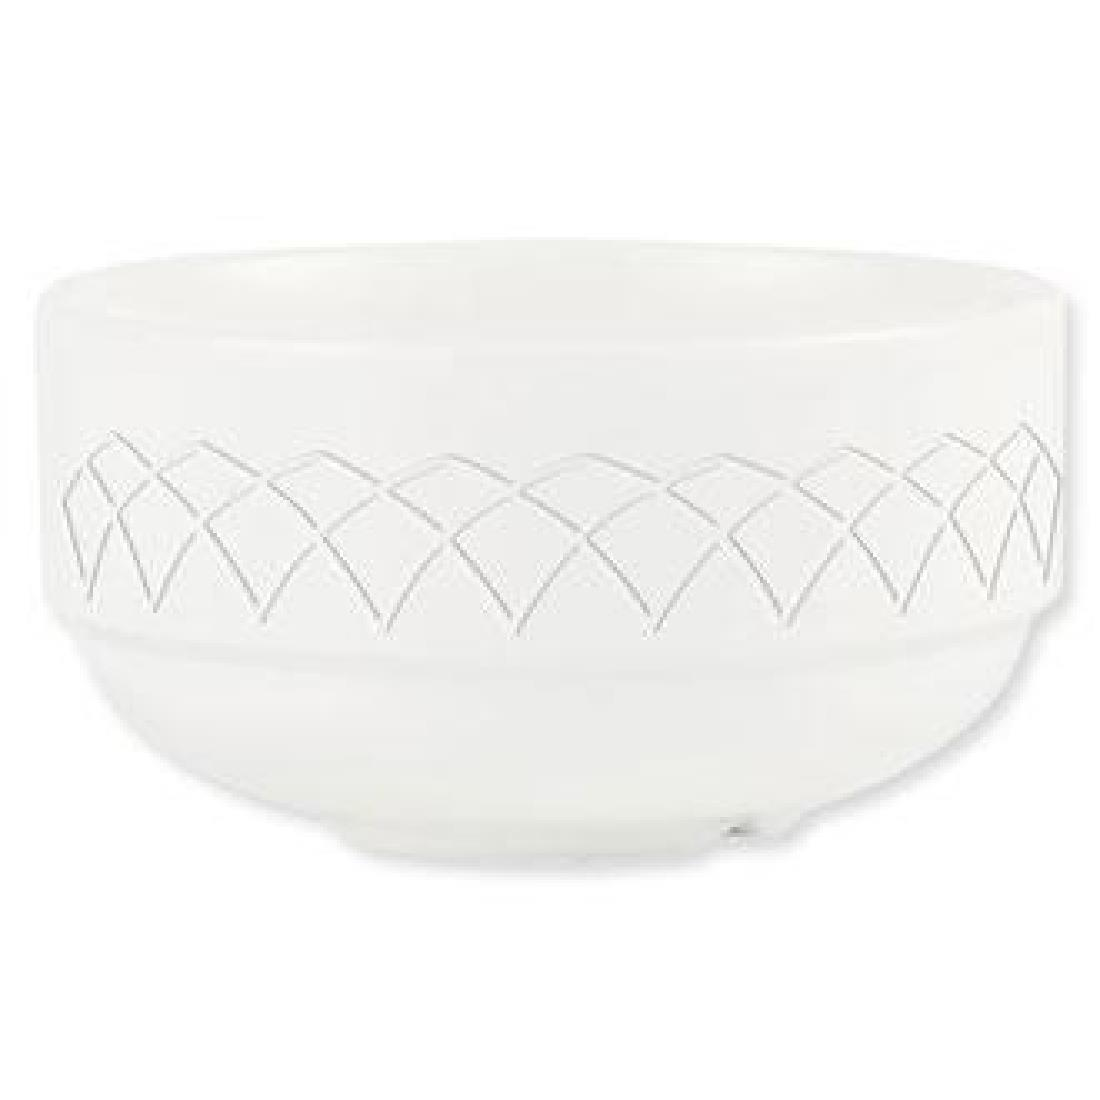 Y645 - Alchemy Jardin Consomme Bowl Unhandled